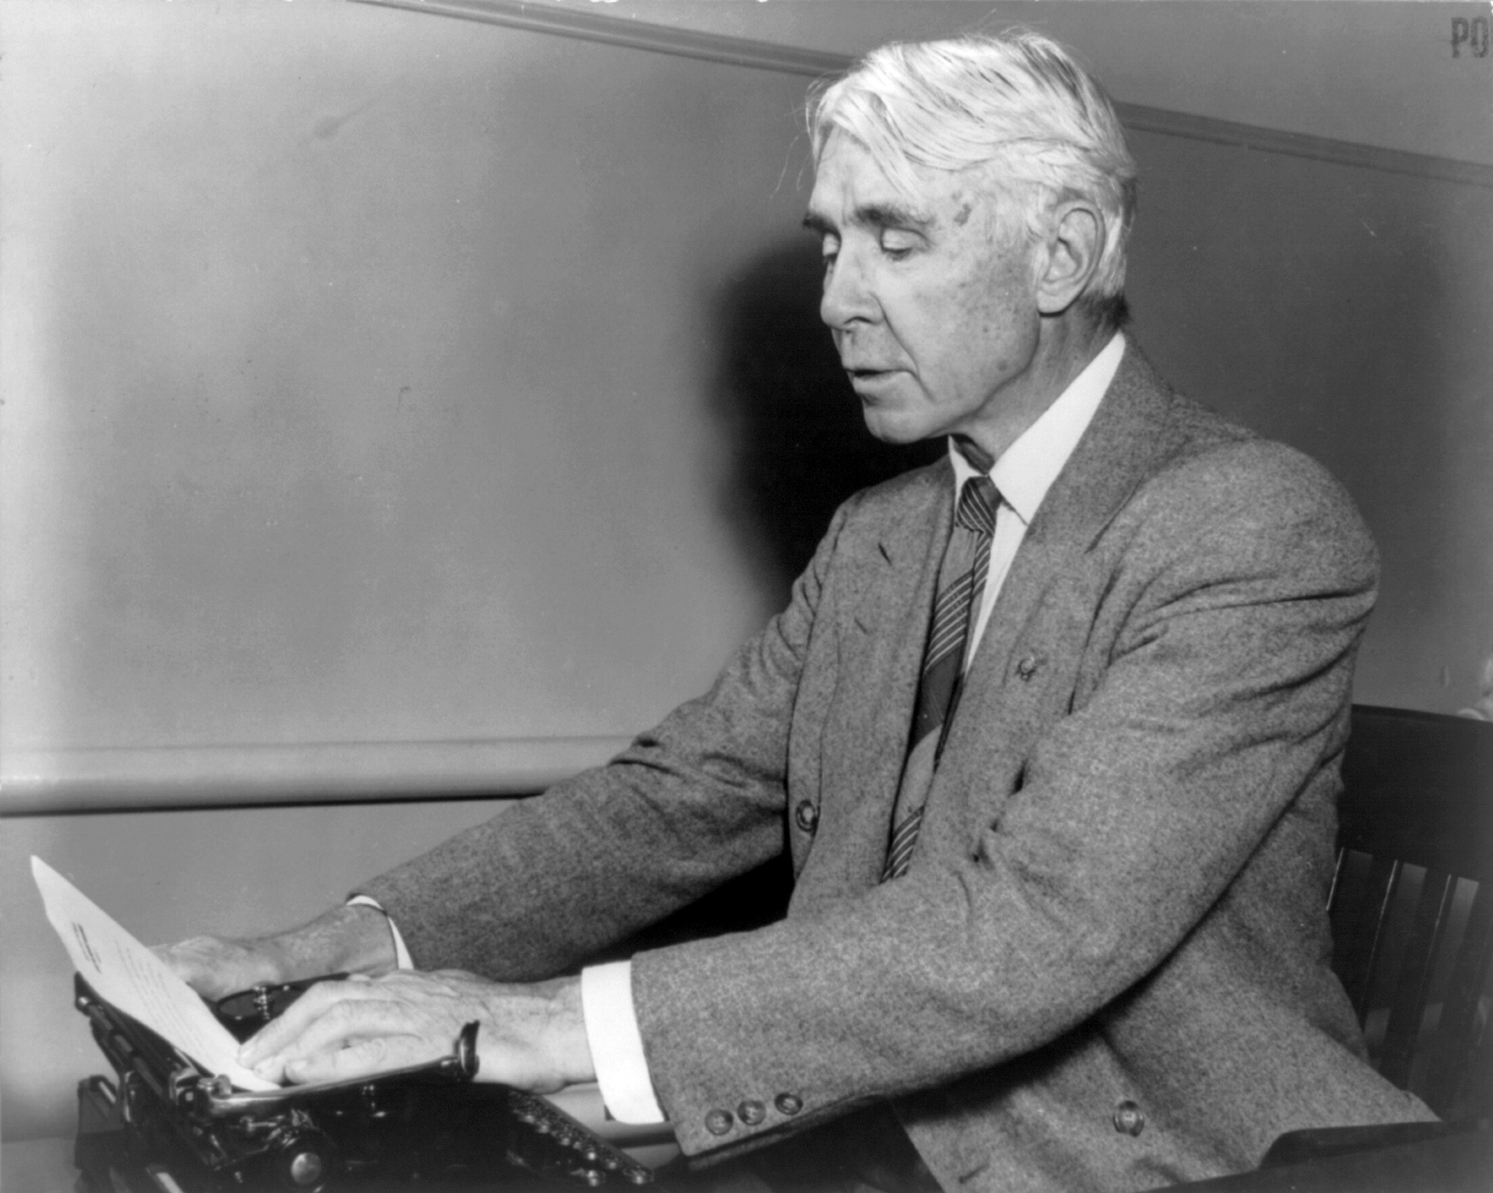 carl sandburg and how he was influenced Carl sandburg admits that tor his part tha reoitation from the love chapter or first corinthians was tor the sound of the words and not so much for the spiritual uplirt.